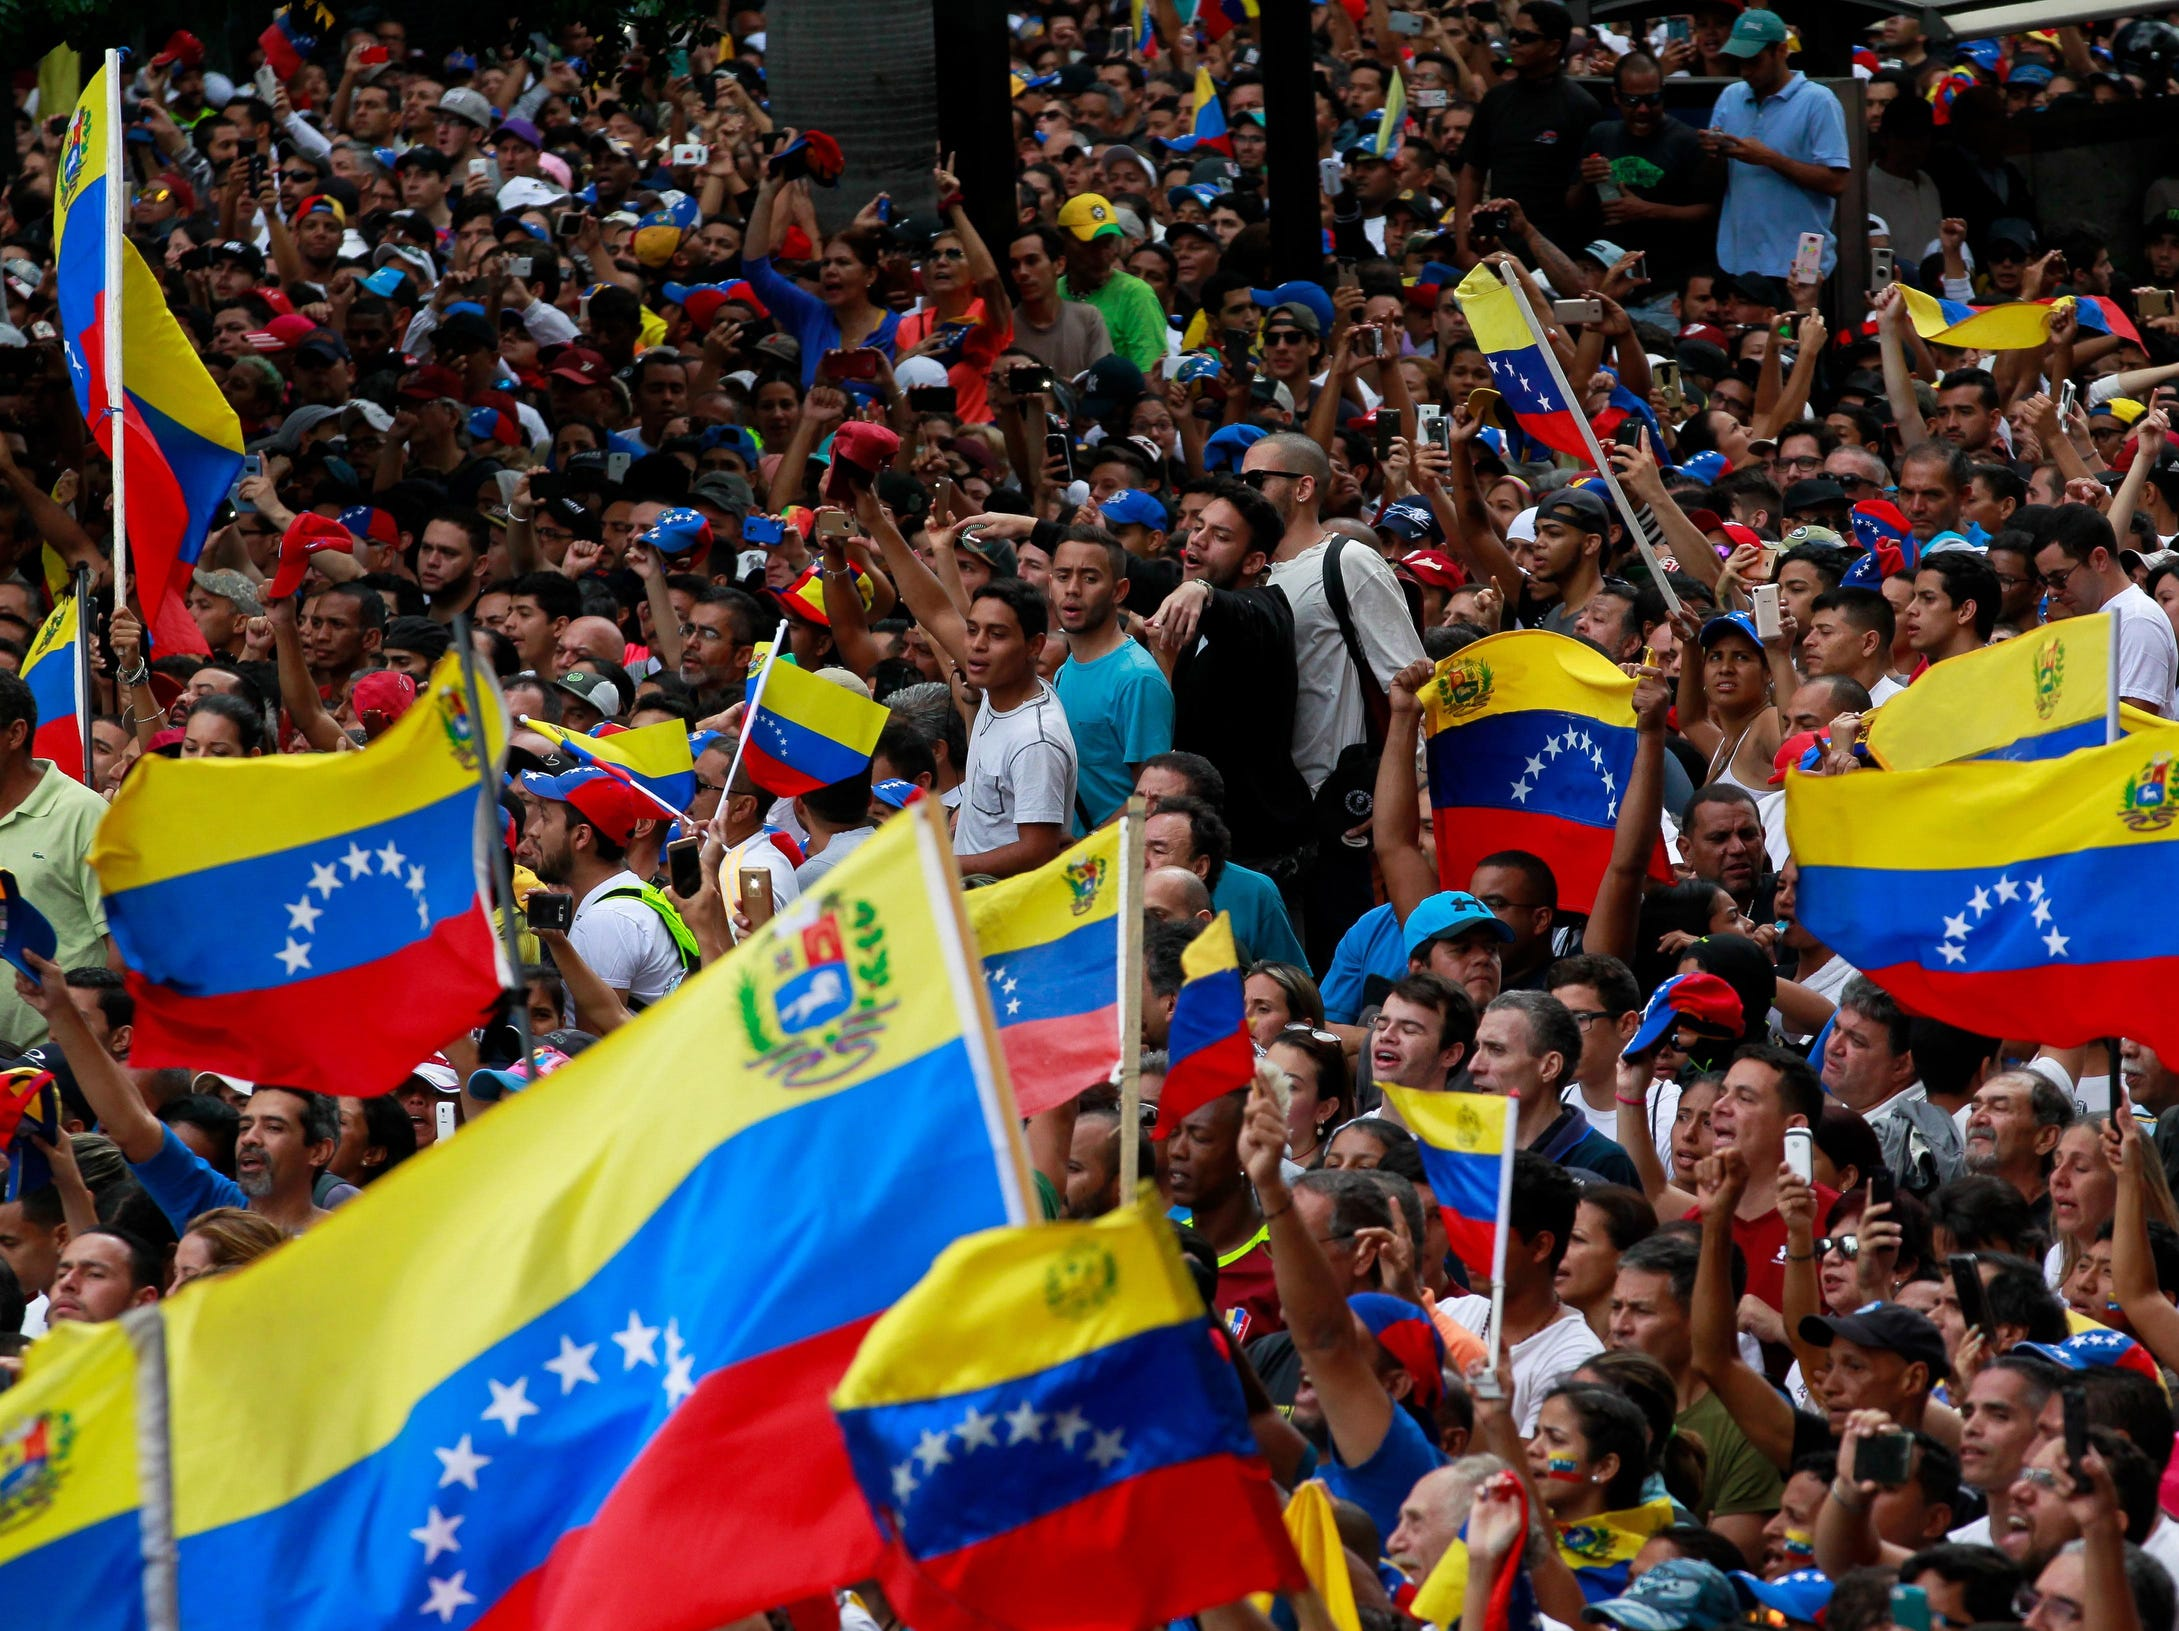 Opponents of Chavism demonstrate against the Government of President Nicolas Maduro in Caracas, Venezuela, Jan. 23, 2019. Chavists and opponents are again demonstrating in the streets of the country to support or question the legitimacy of the head of state, which the Parliament and a large part of the international community do not recognize.